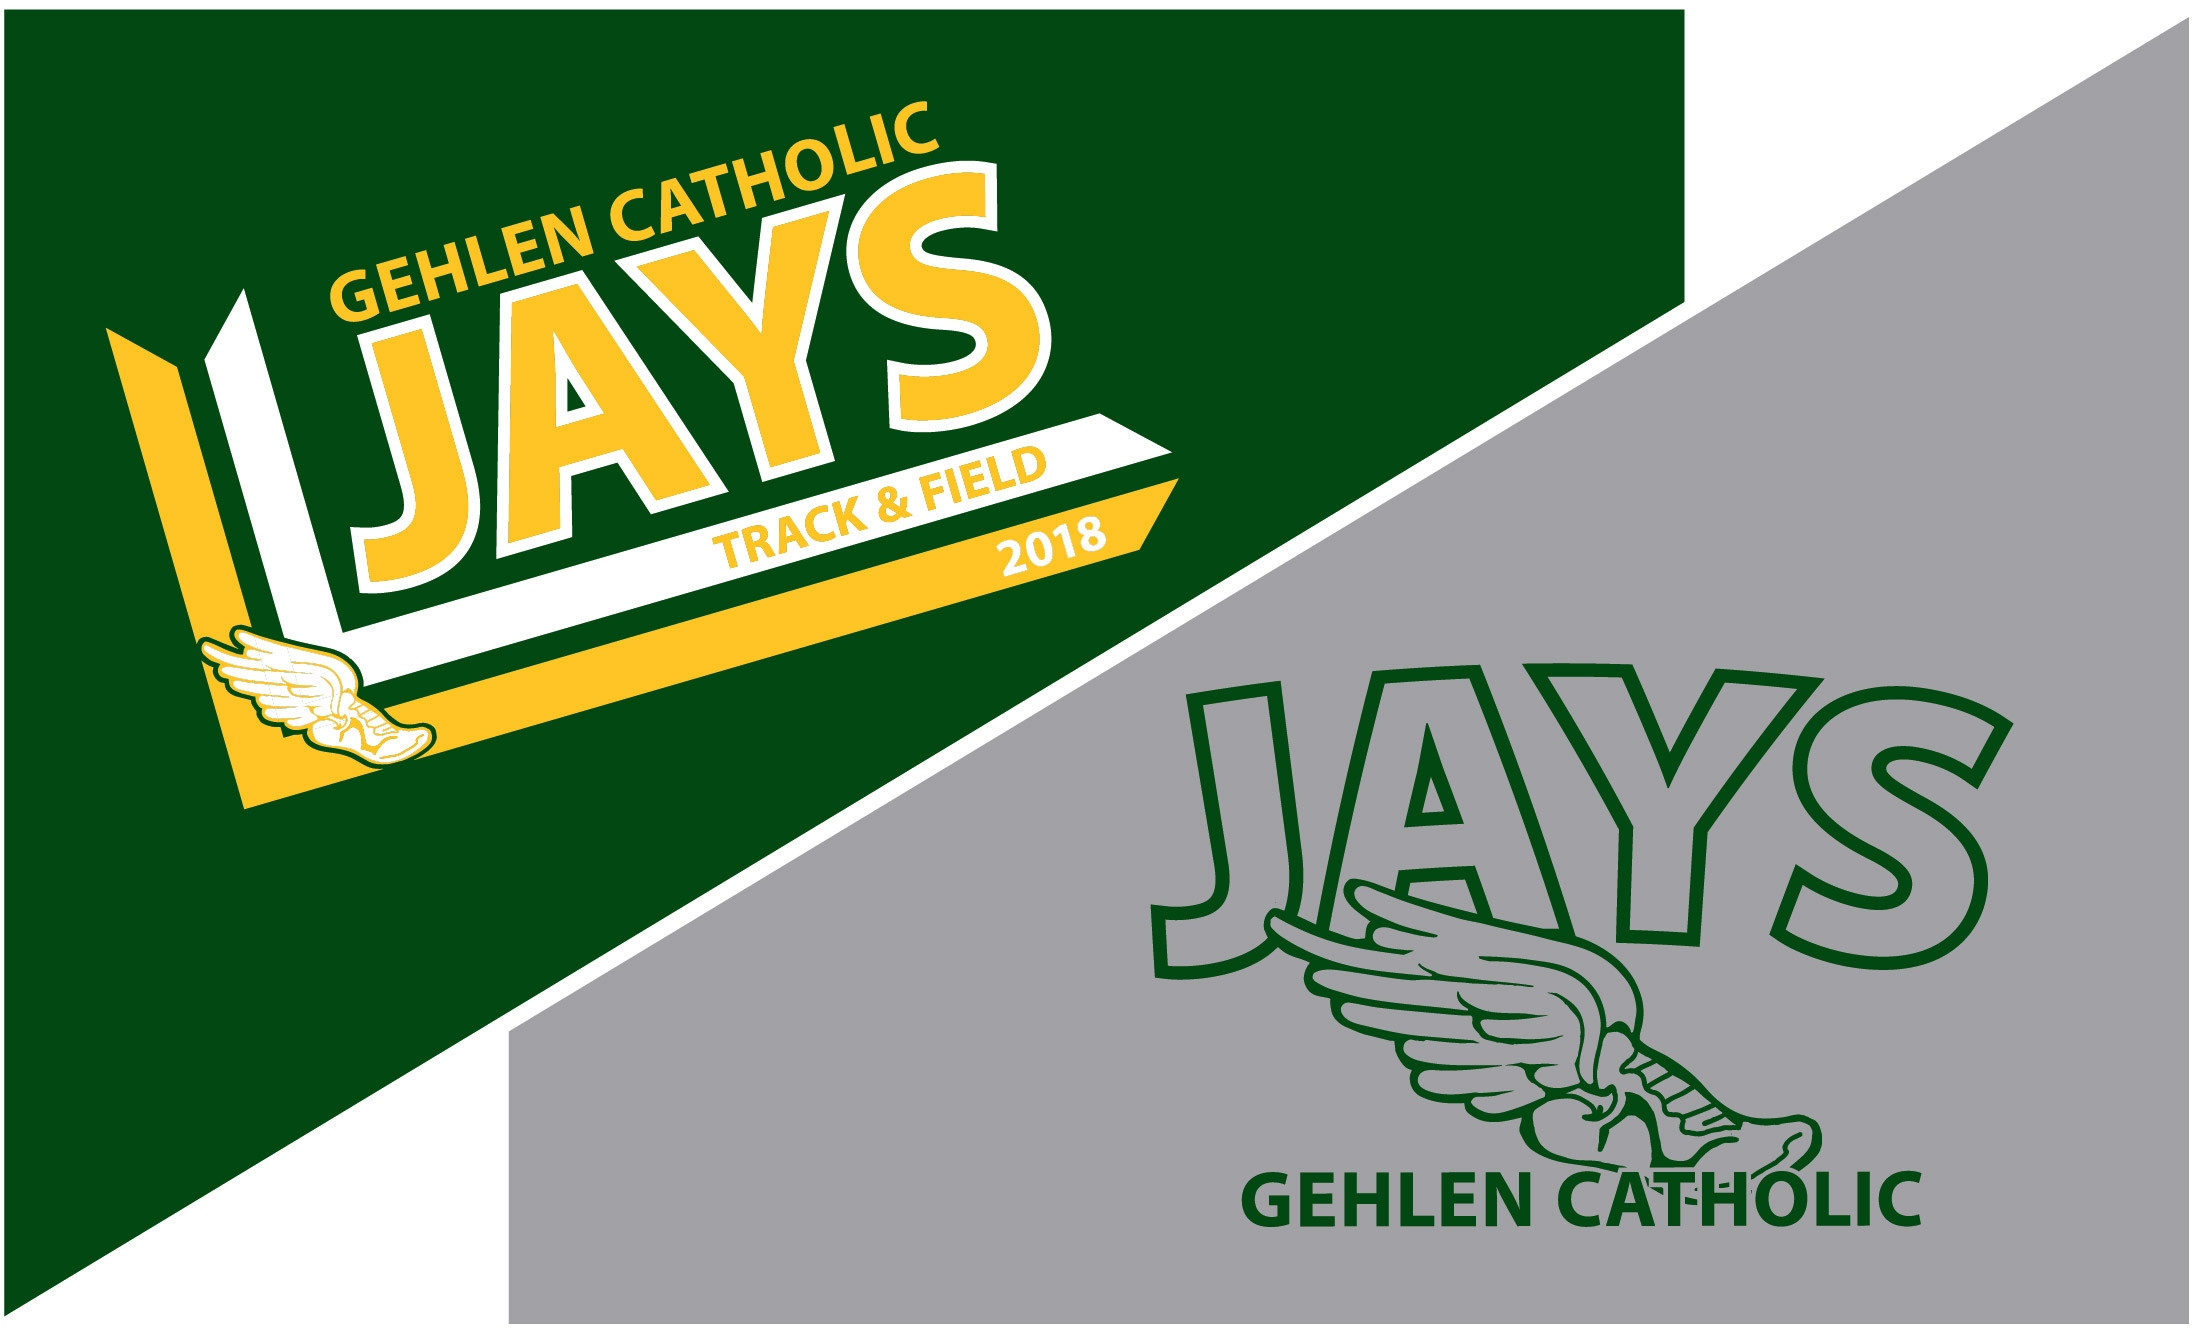 Gehlen Catholic 2018 Track